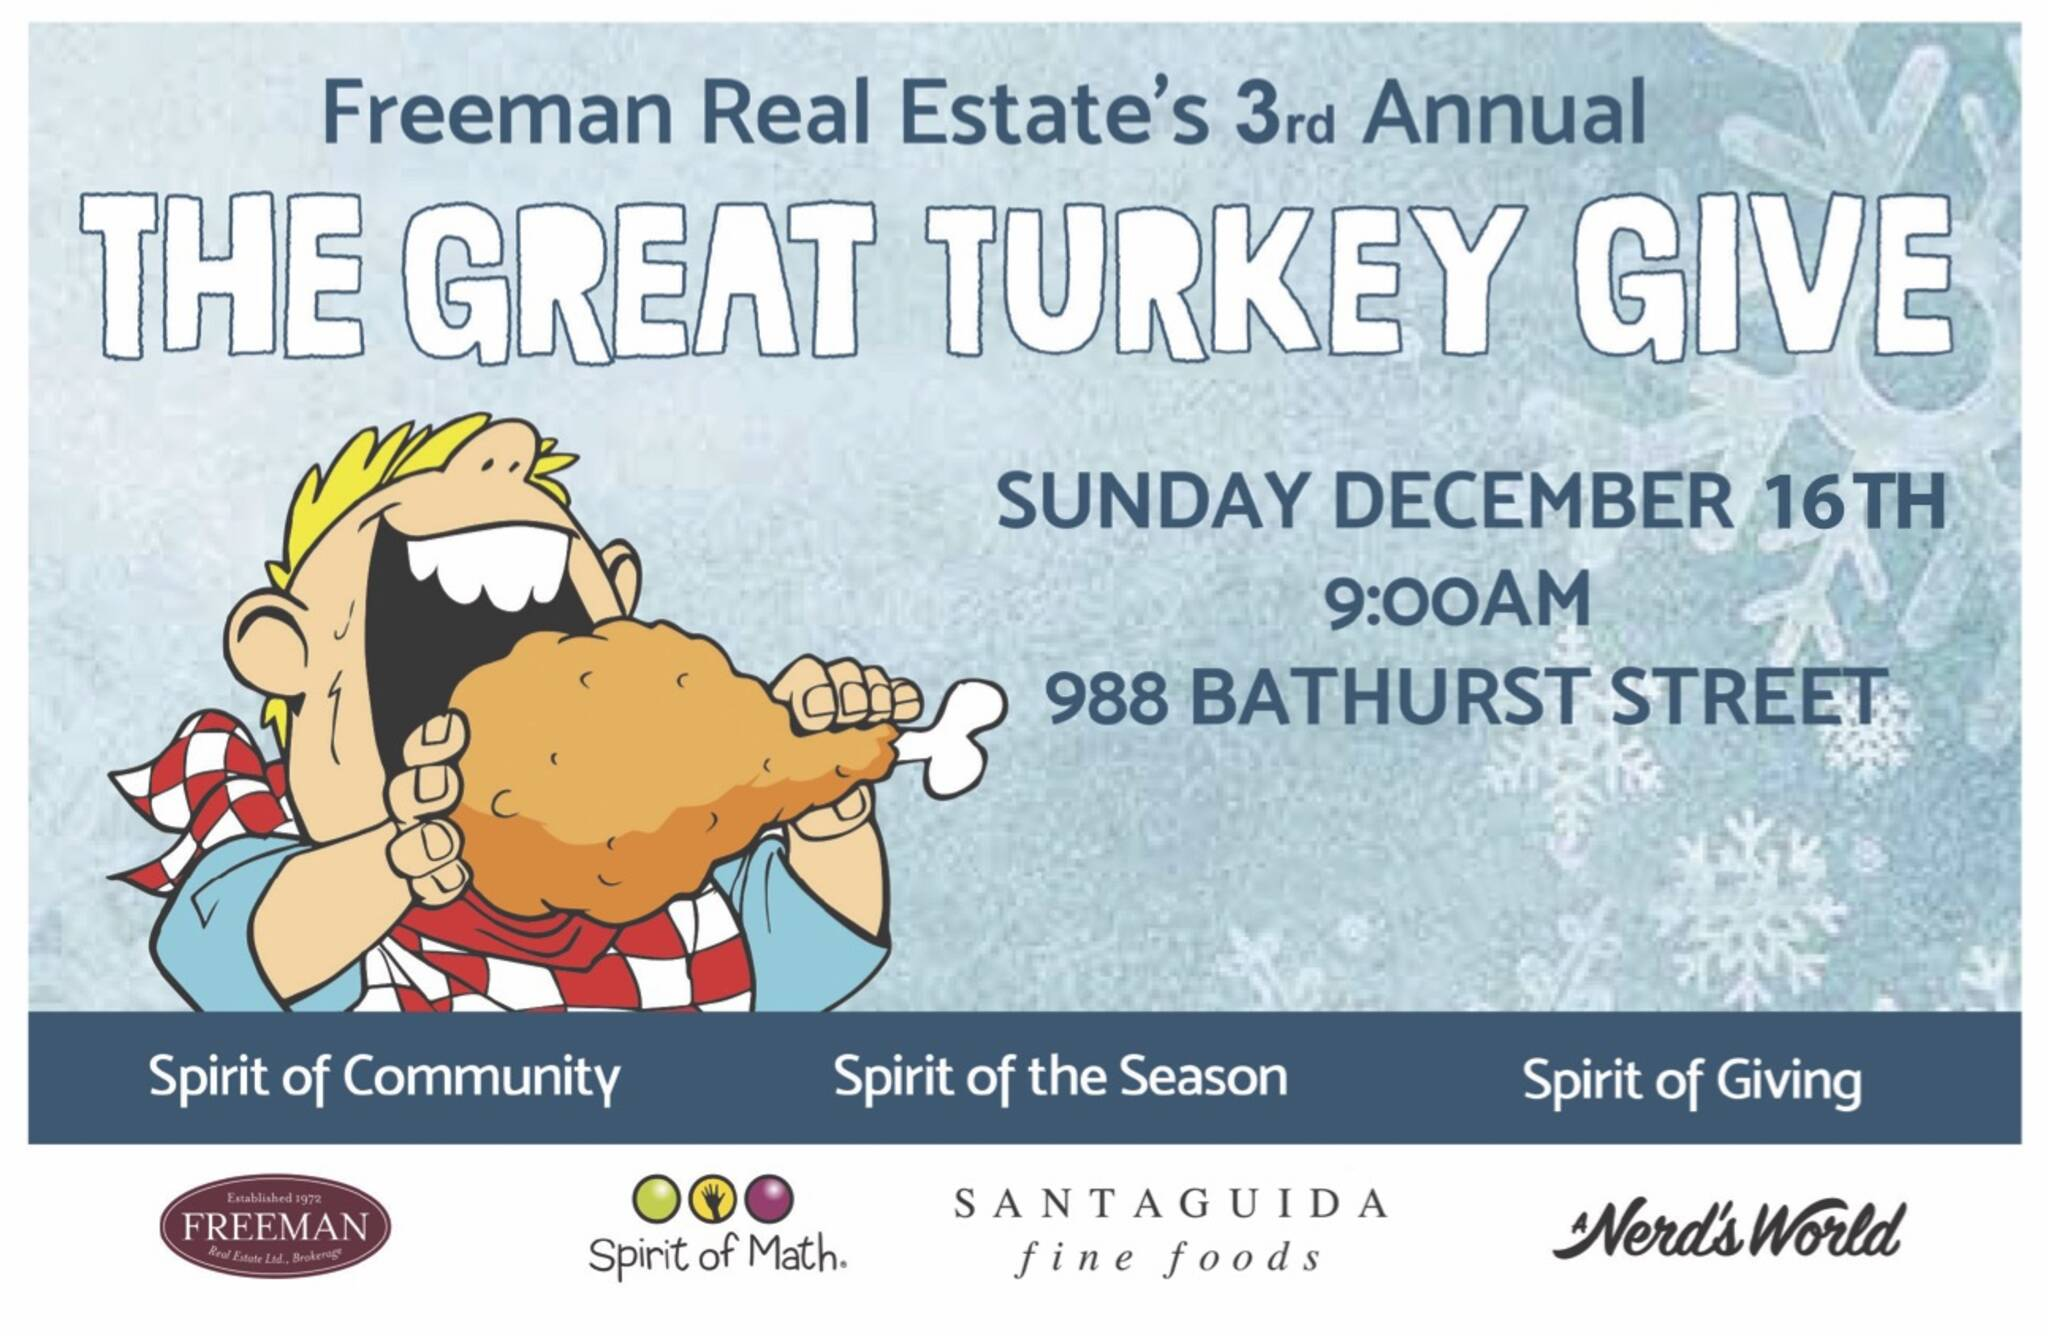 THE 3rd ANNUAL GREAT TURKEY GIVE